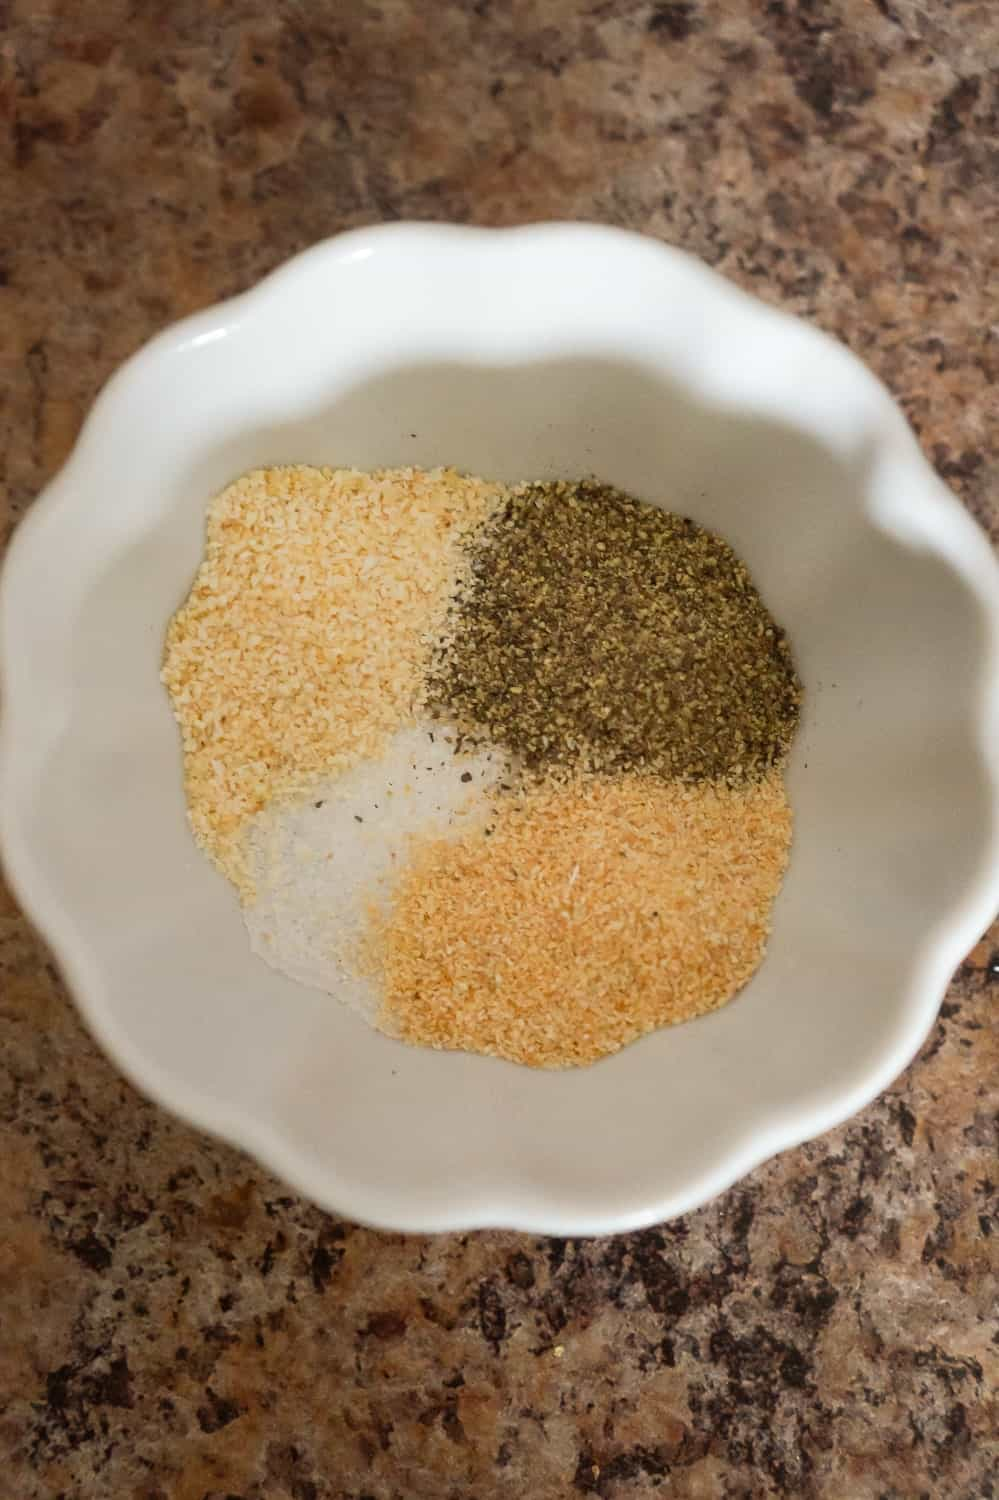 garlic powder, onion powder, salt and pepper in a small bowl